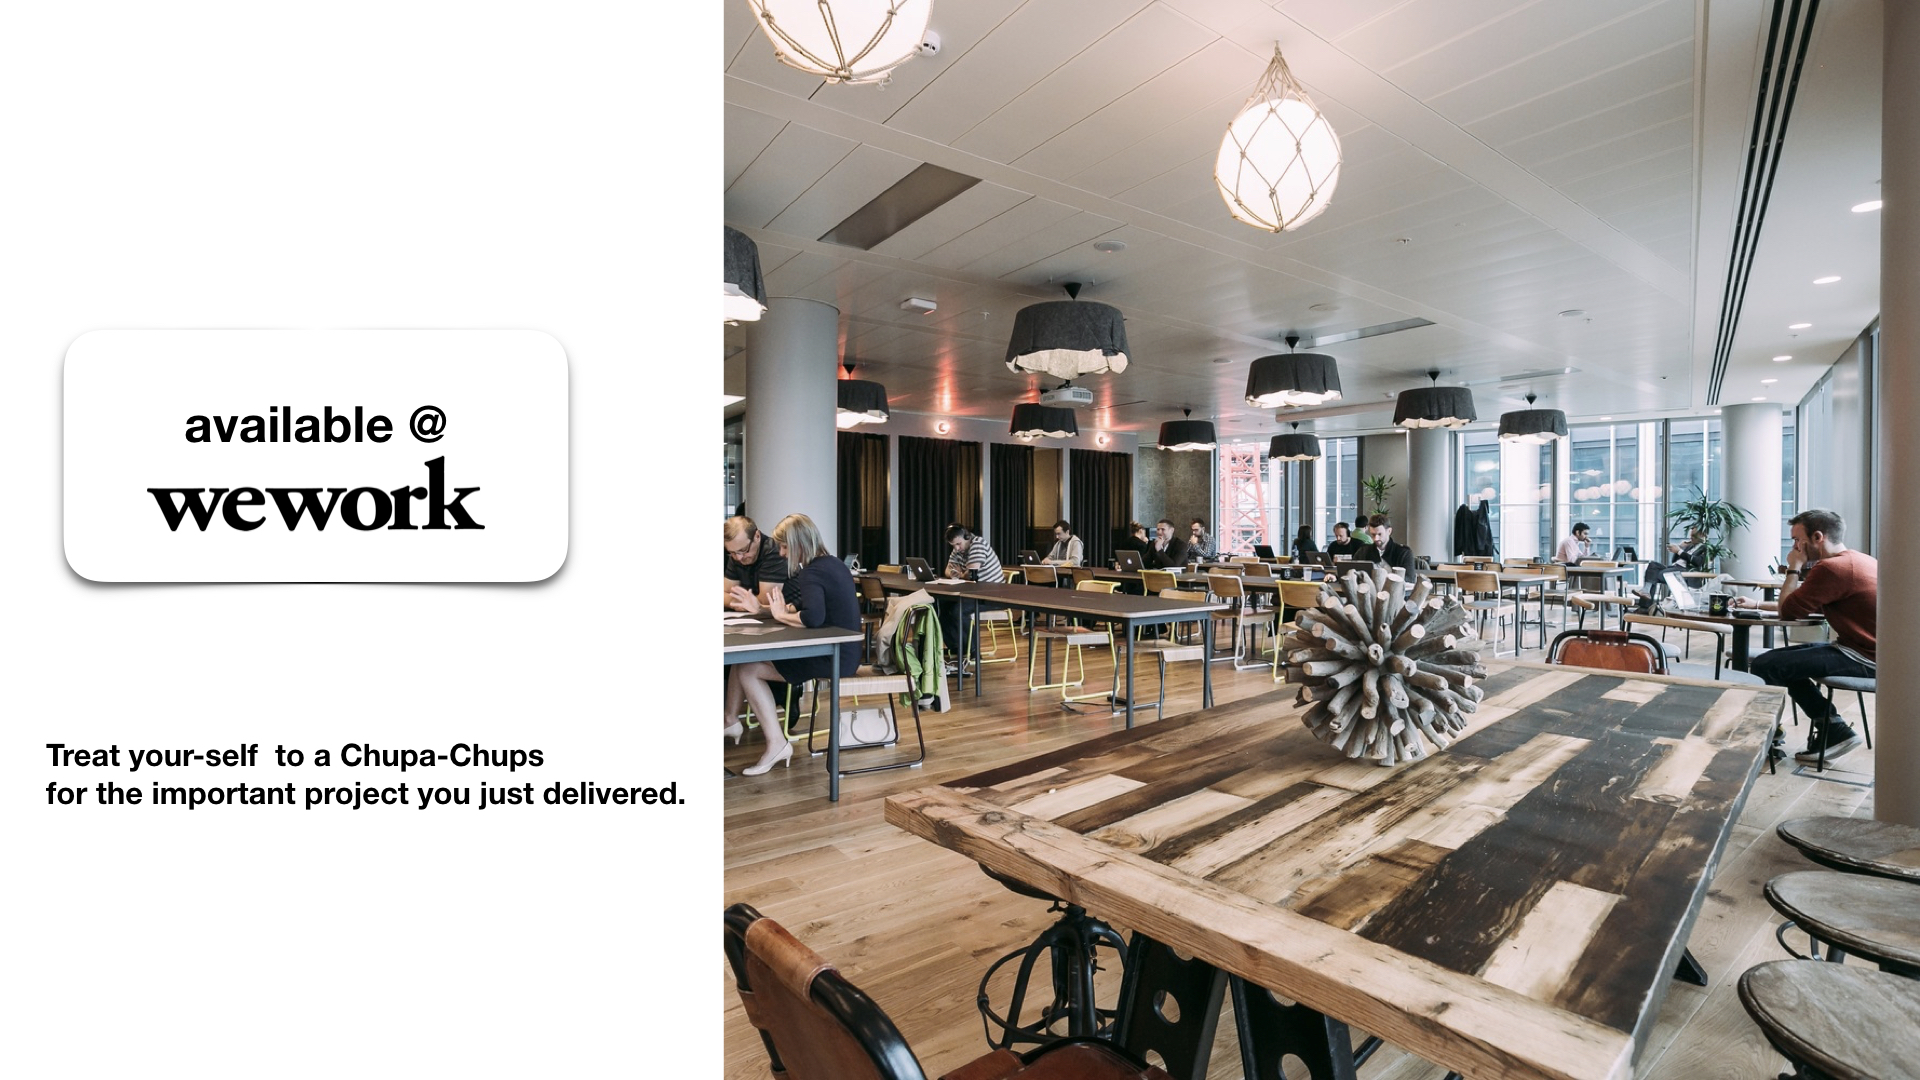 Start a partnership with WeWork. Chupa Chups ending machine will be present in all WW workspaces.